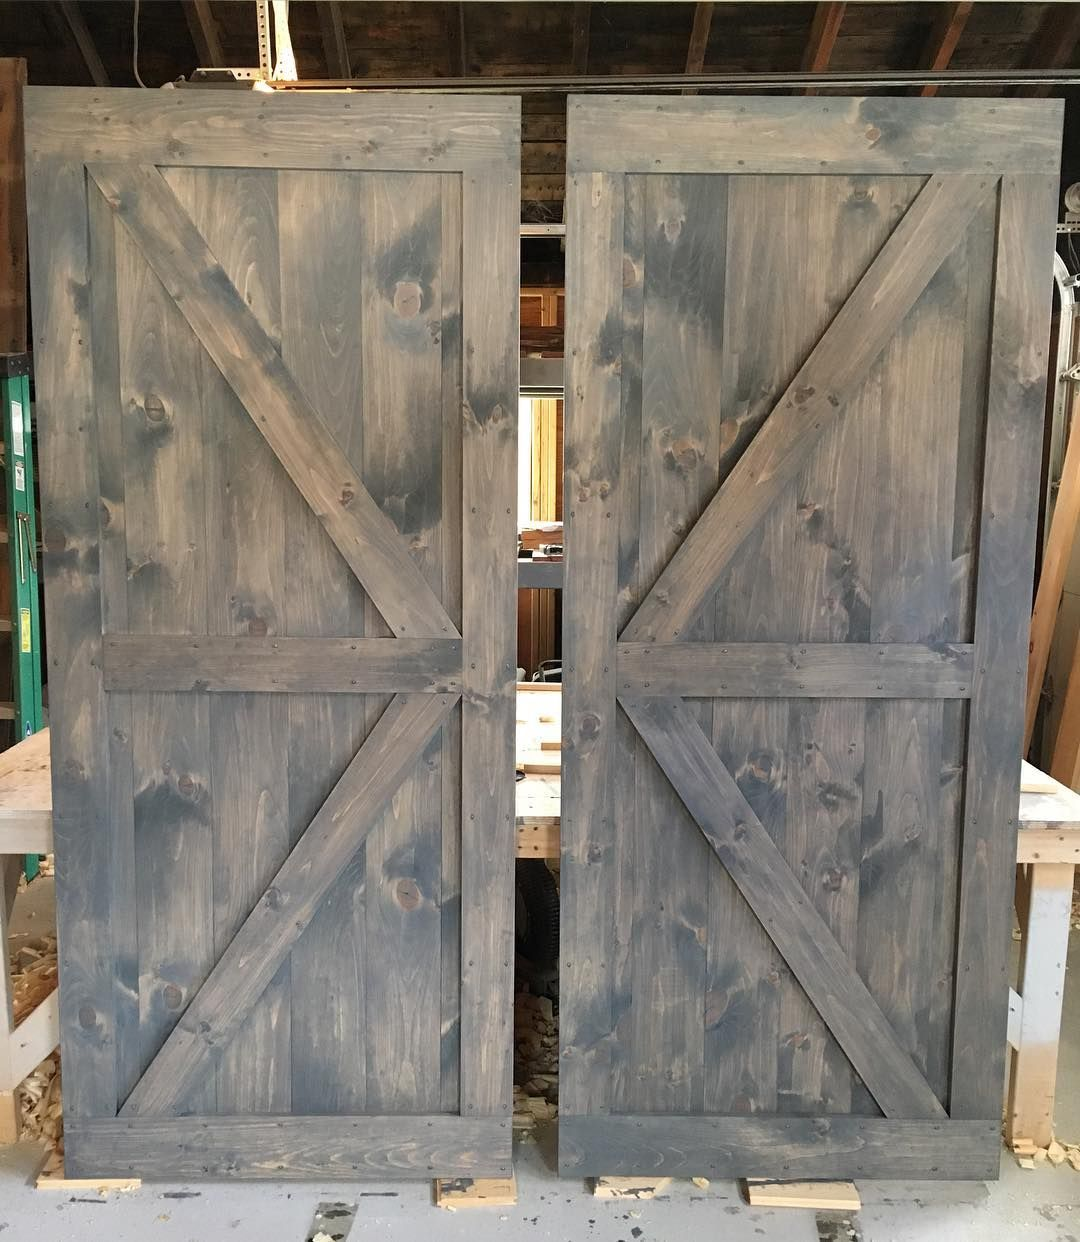 Another Pair Of British Brace Barn Doors With Classic Grey Stain A Perfect Combo Matchmadeinheaven Rusticroo B Cottage Decor Farmhouse Barn Door Wood Doors